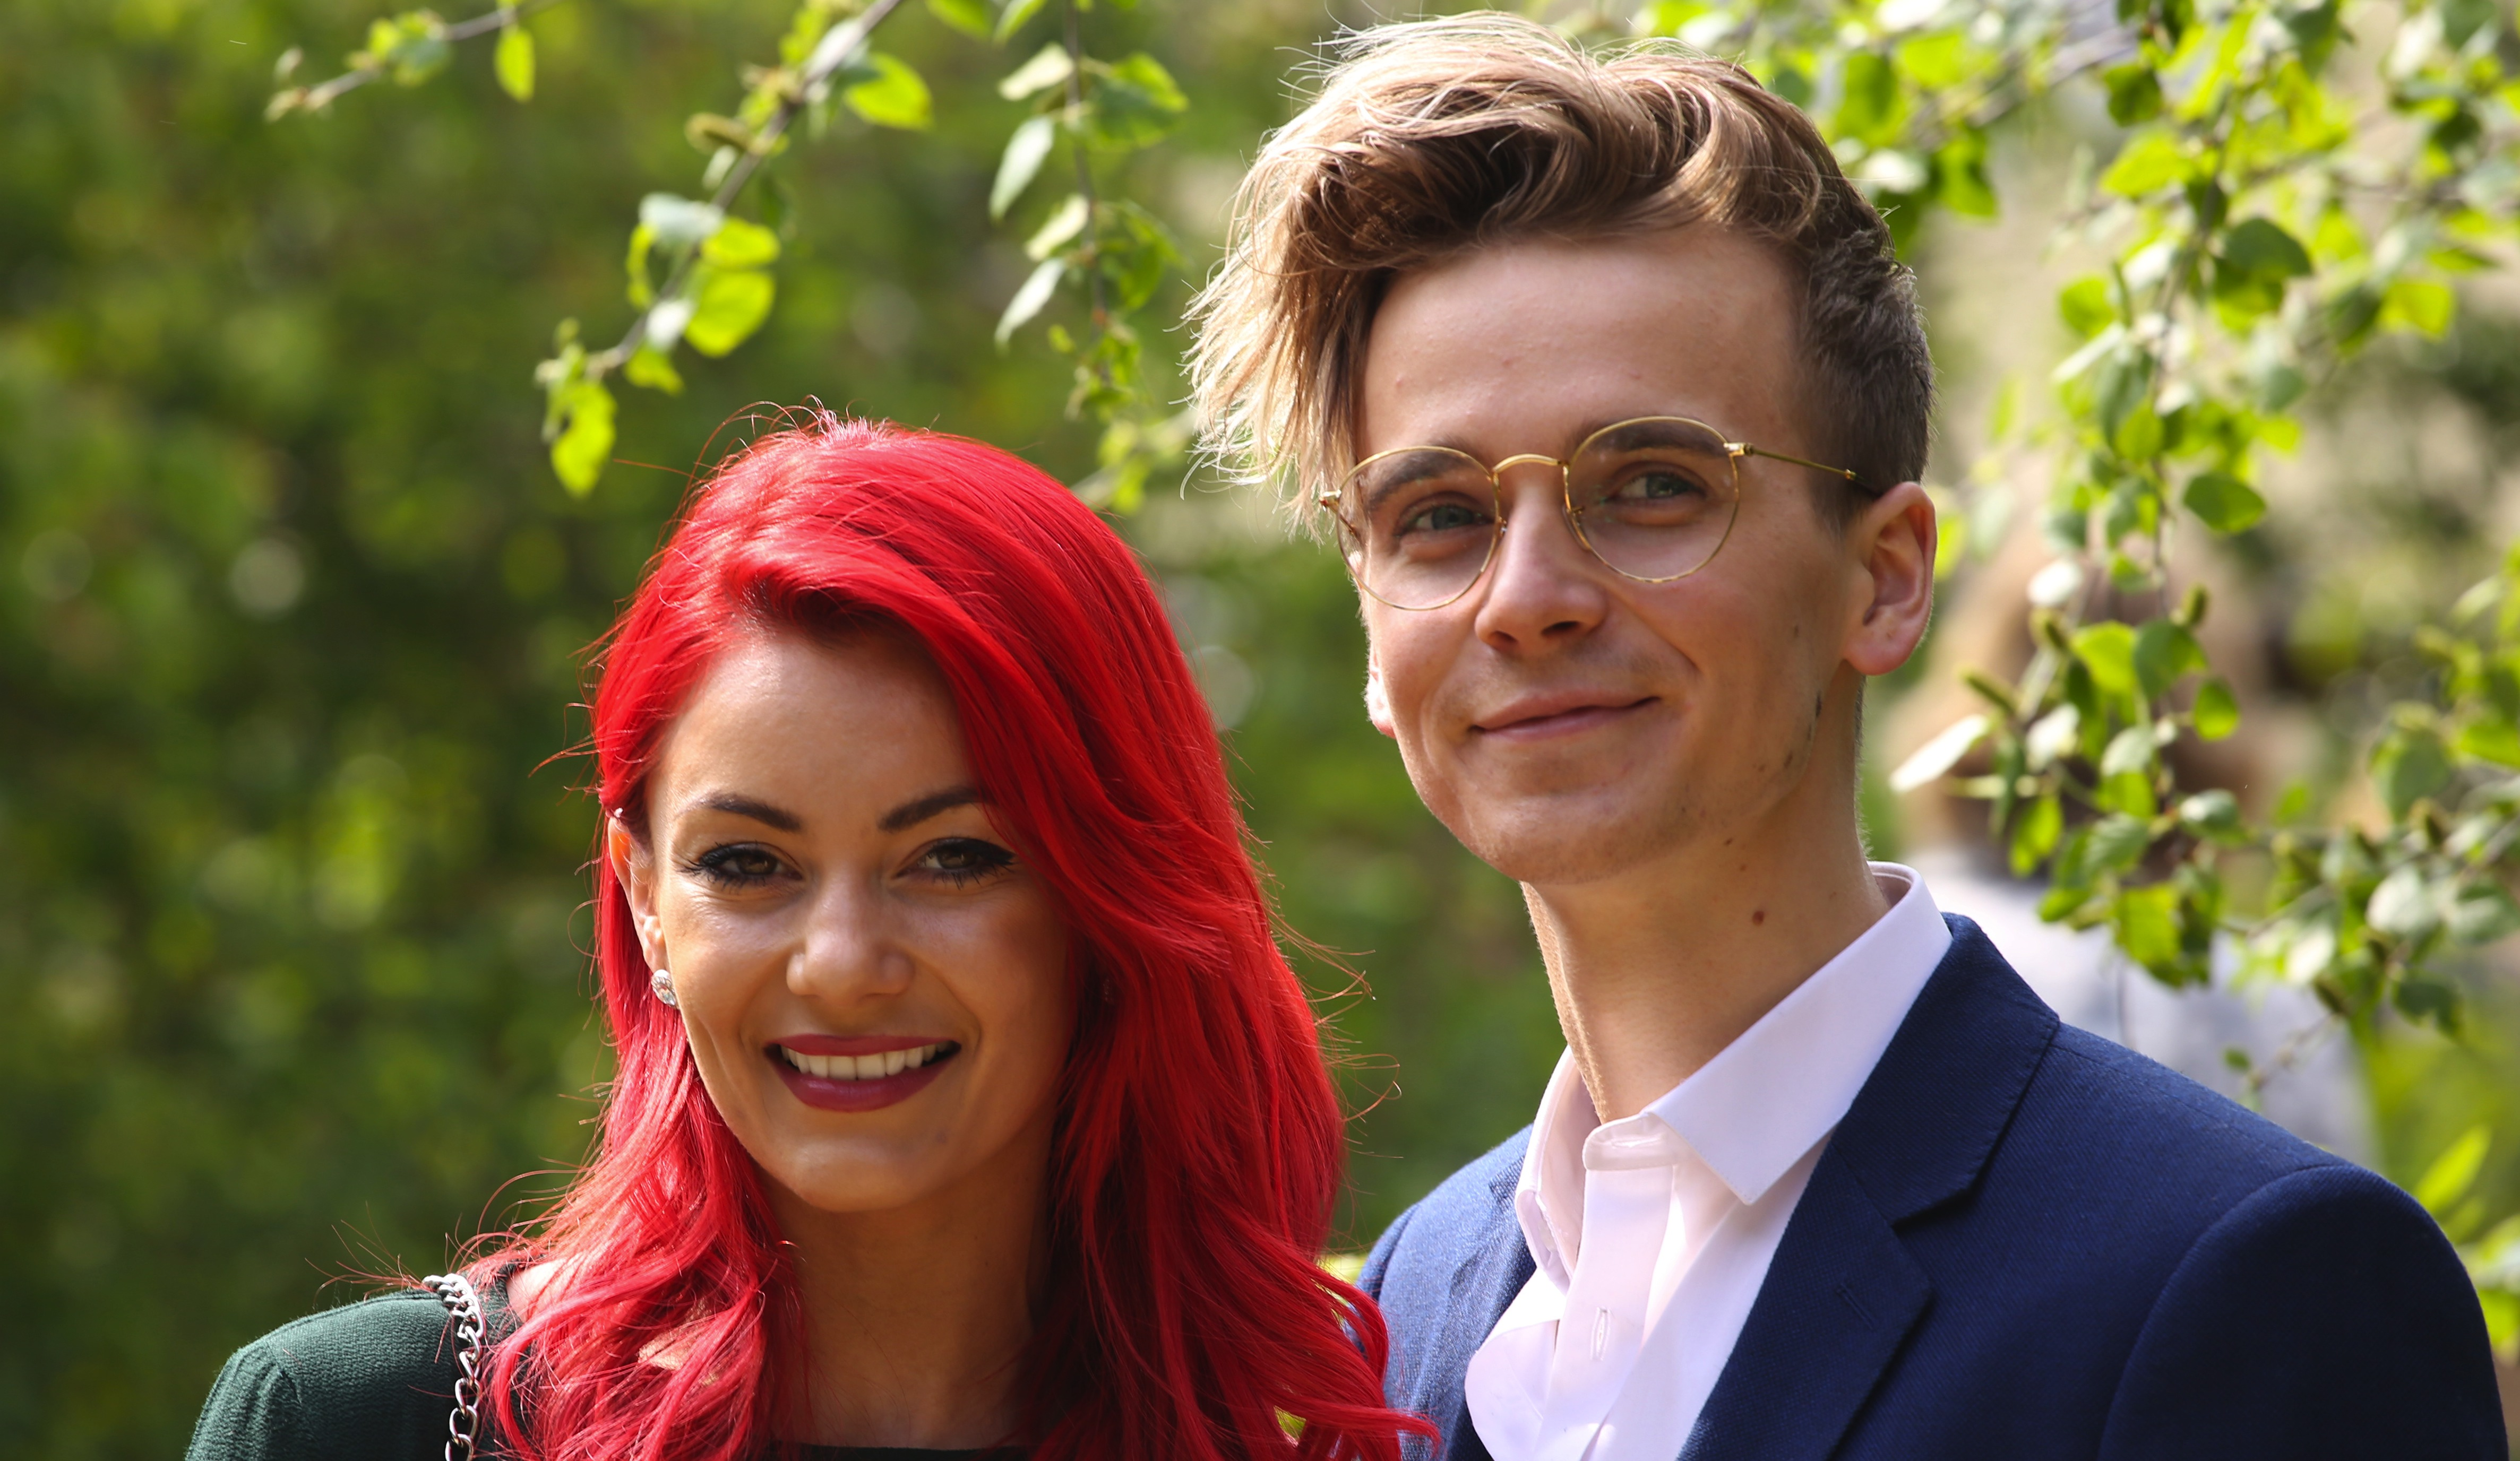 Strictly Come Dancing: Dianne Buswell and Joe Sugg announce that they're moving in together